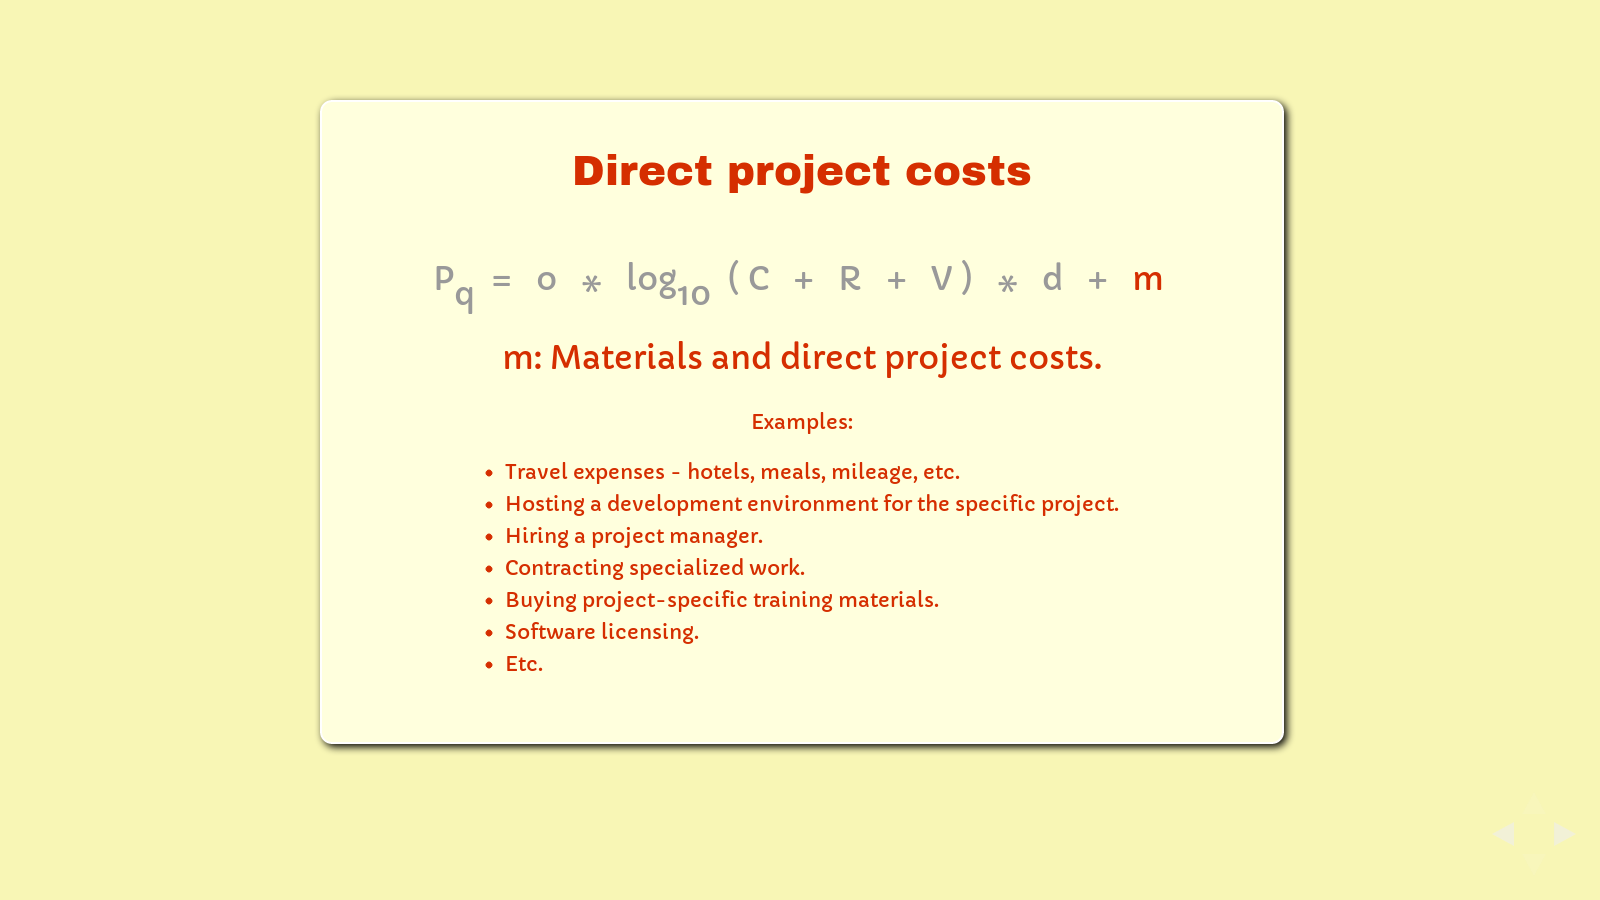 Slide: Project costs, 'm'